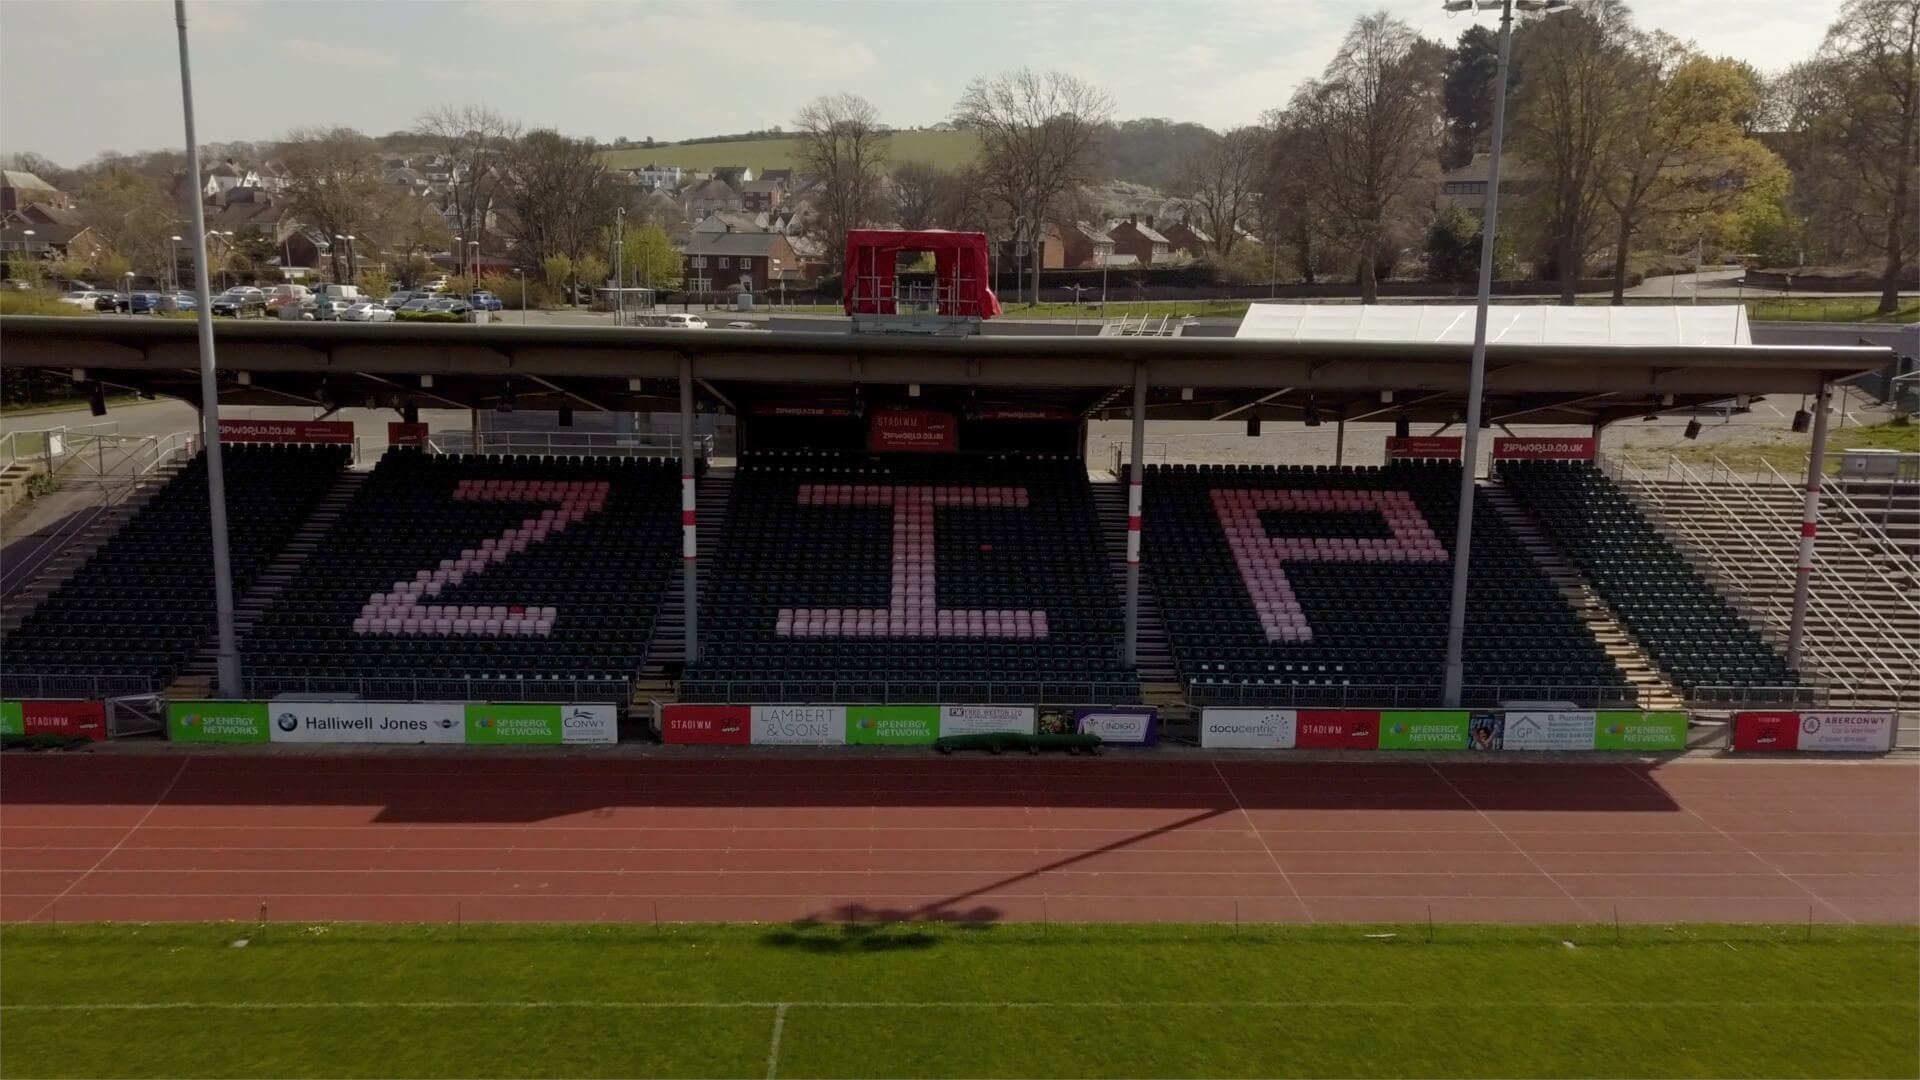 New home for Crusaders in 2021